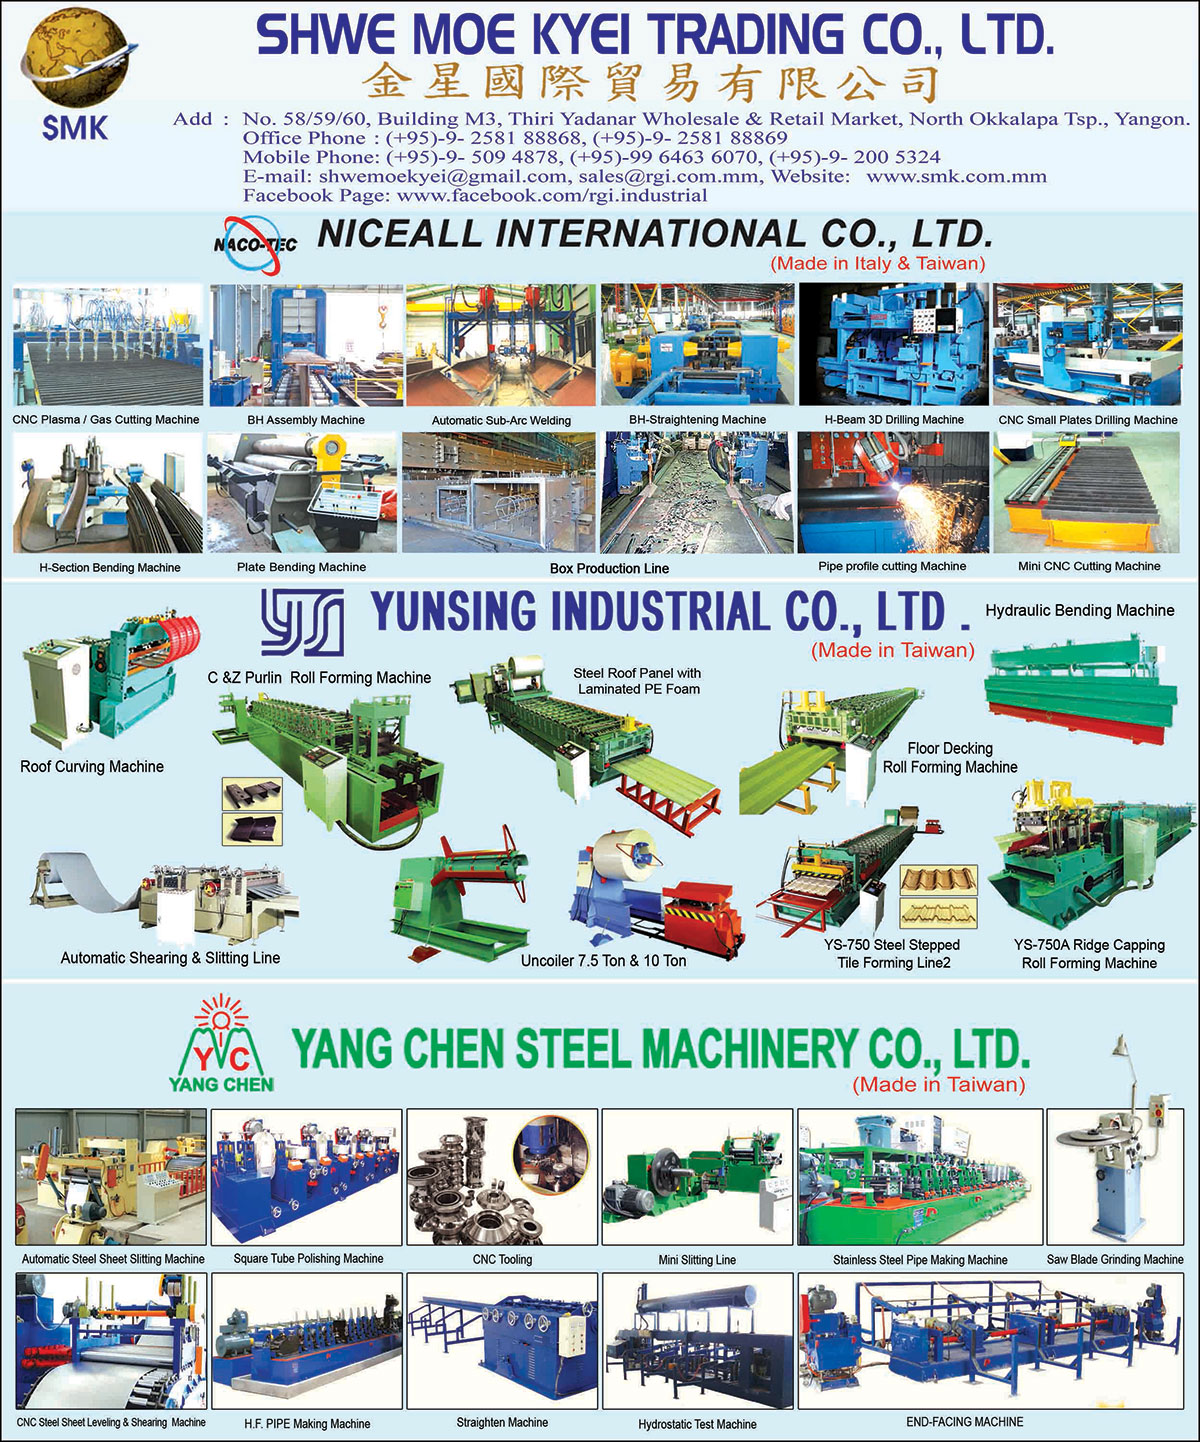 Shwe Moe Kyei Trading Co., Ltd.Construction & Contractor Equipment & Supplies